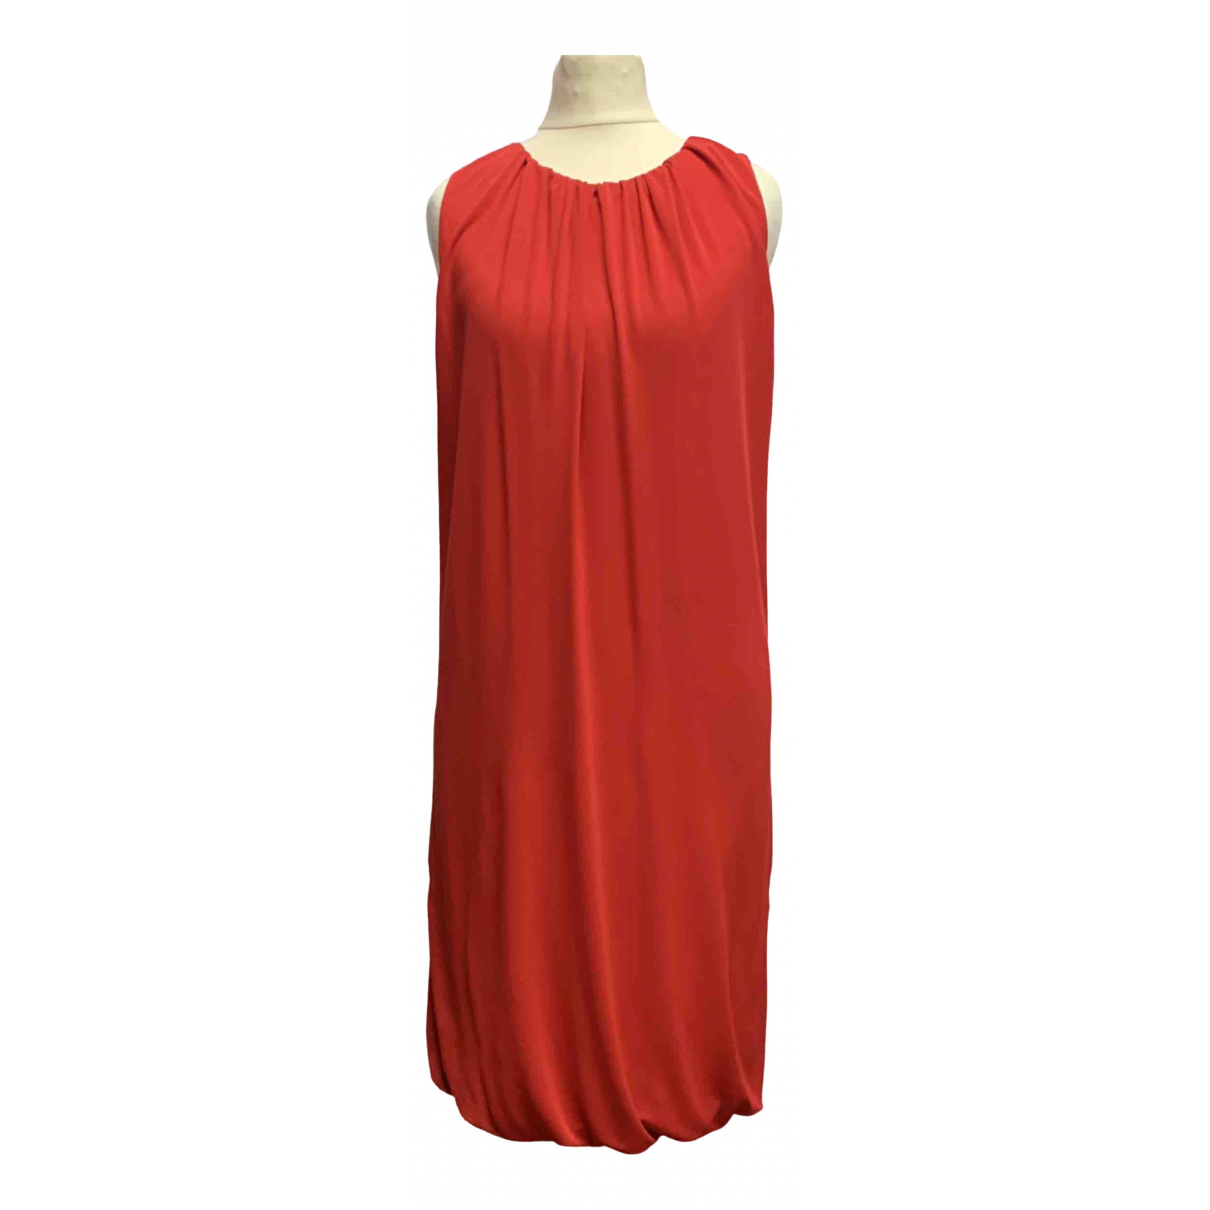 Moschino Cheap And Chic \N Kleid in  Rot Polyester